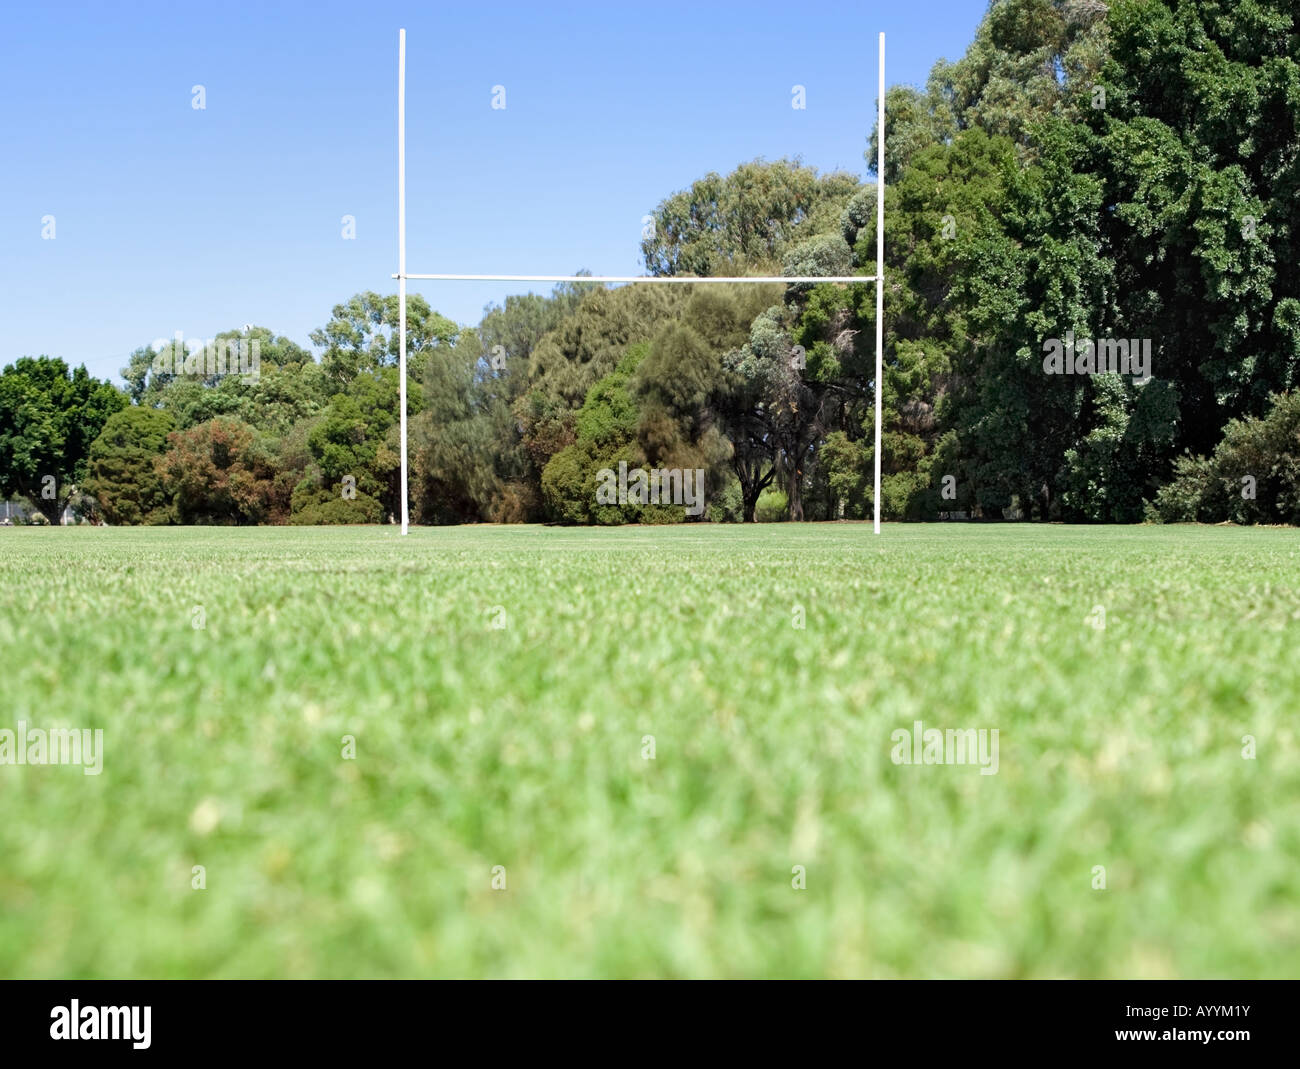 Looking up towards rugby posts in a sports field from grass level. - Stock Image